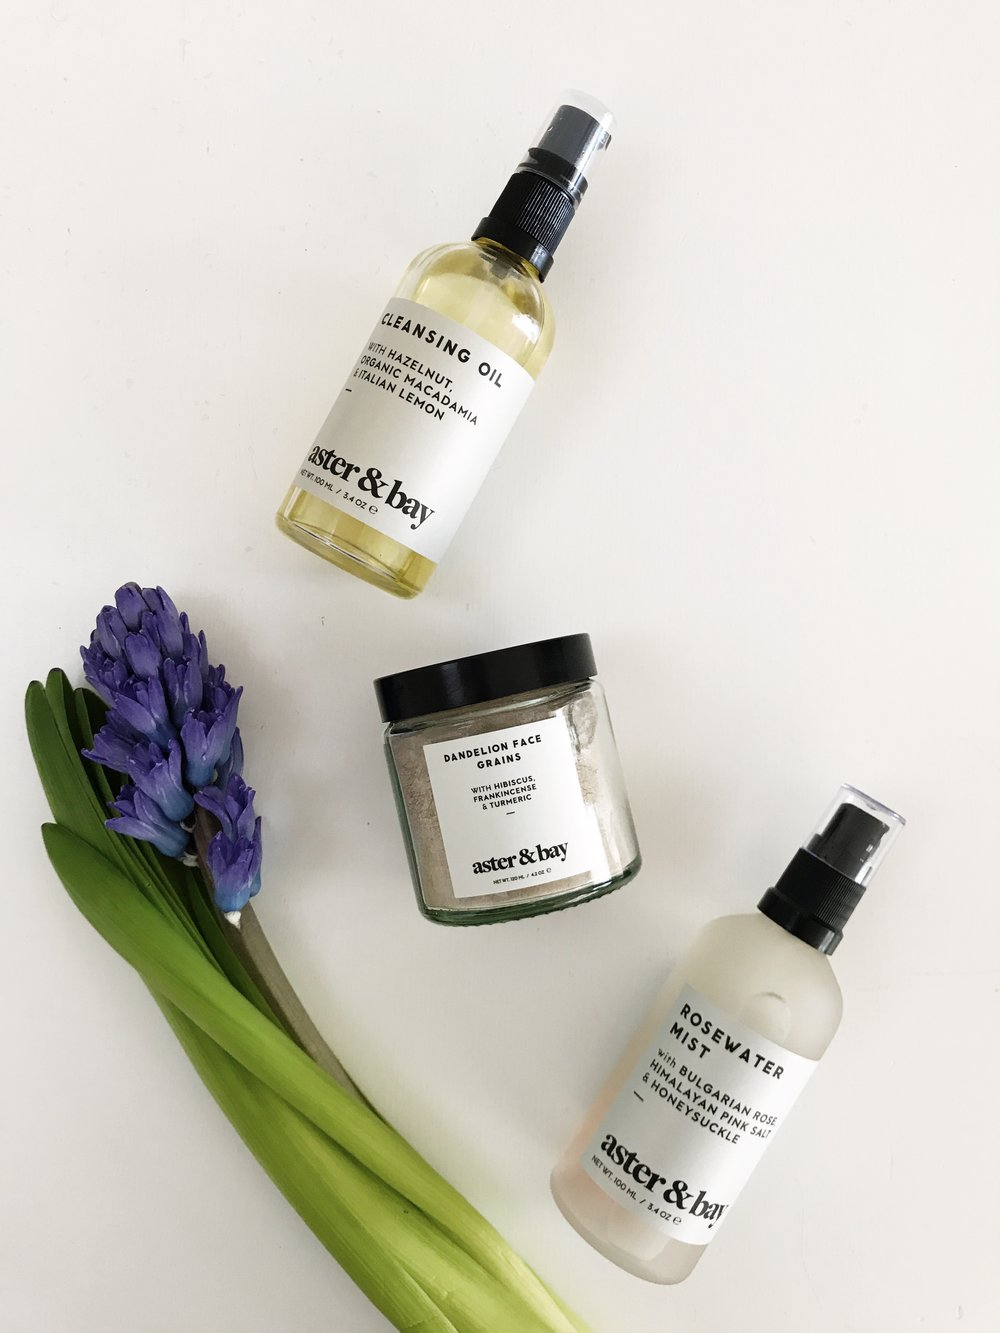 mother's day gifts | mother's day presents | mother's day ideas | mother's day gift ideas | mother's day present ideas | aster & bay | natural skincare | mother's day beauty gifts | green beauty | natural skincare | ourstorytime.co.uk